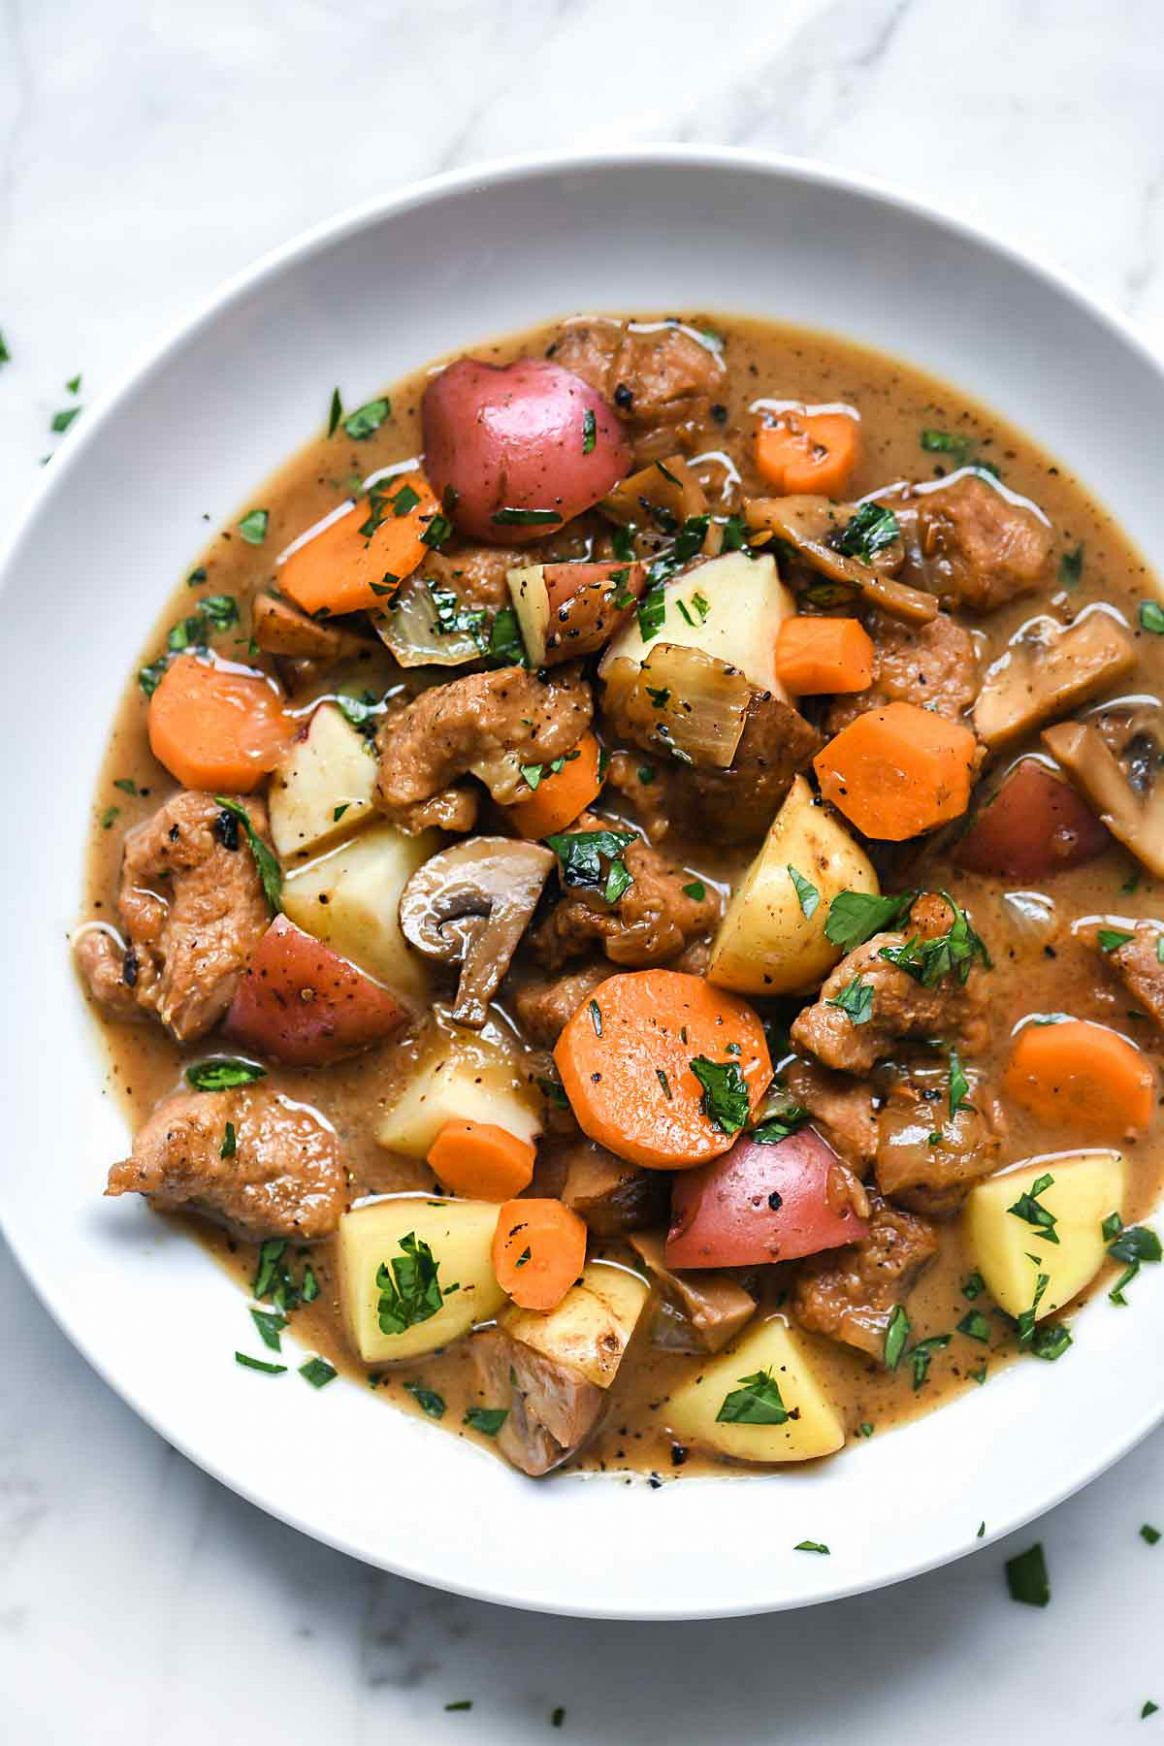 Irish Pork Stew with Stout and Caraway Seeds - Recipes Pork Stew